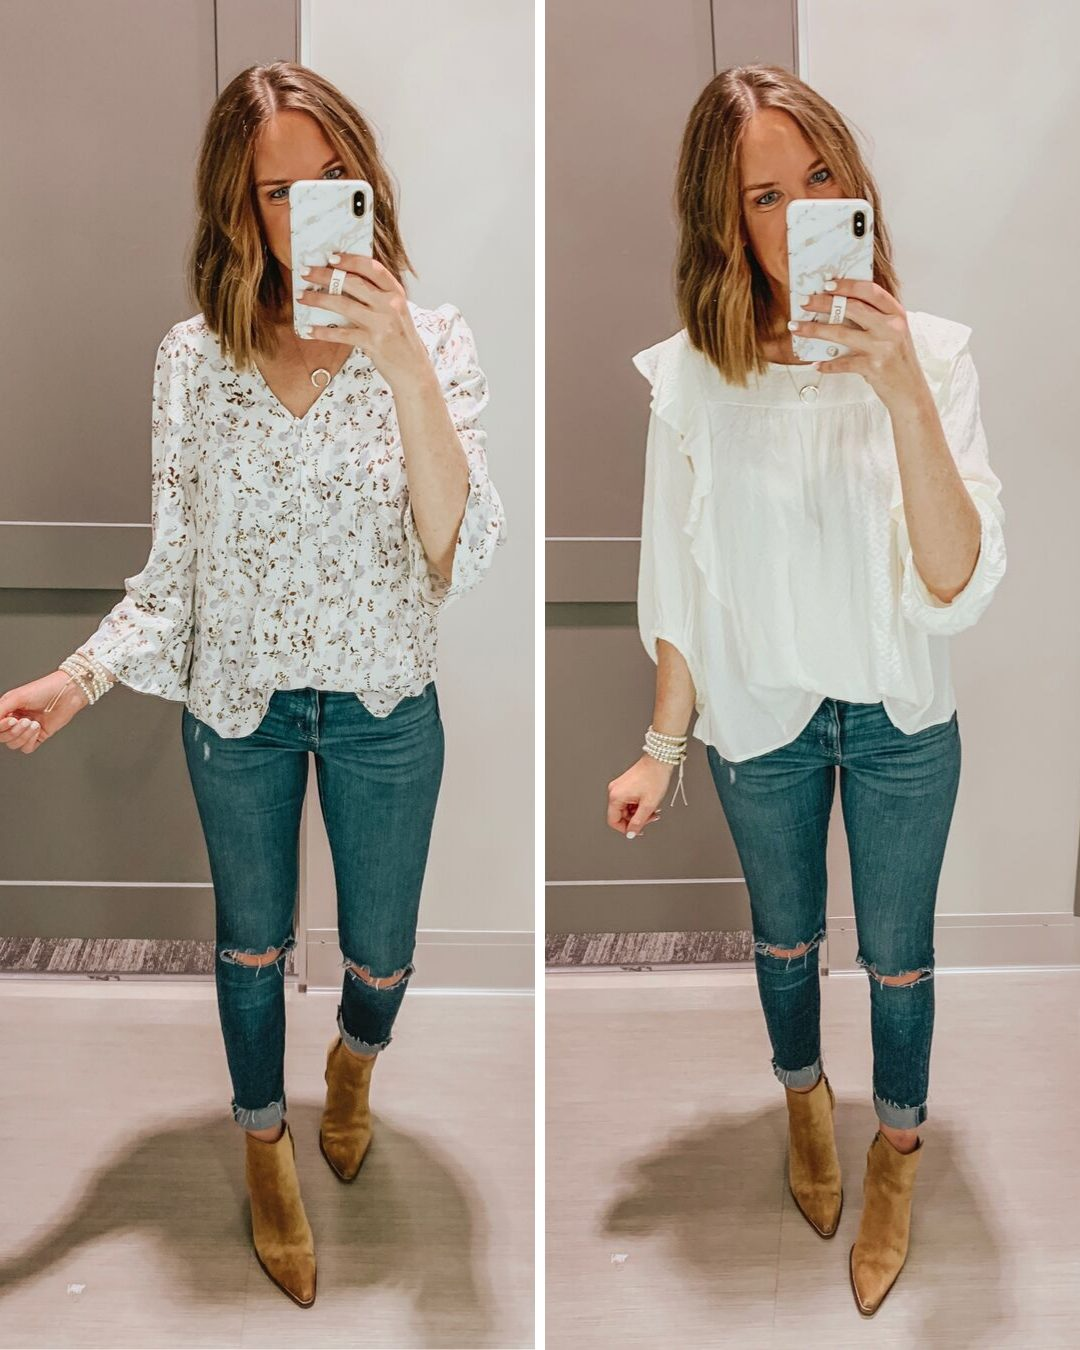 Target fall fashion preview 2019, peasant blouse, white ruffle blouse, suede pointed booties, UNiveresal Thread jeans